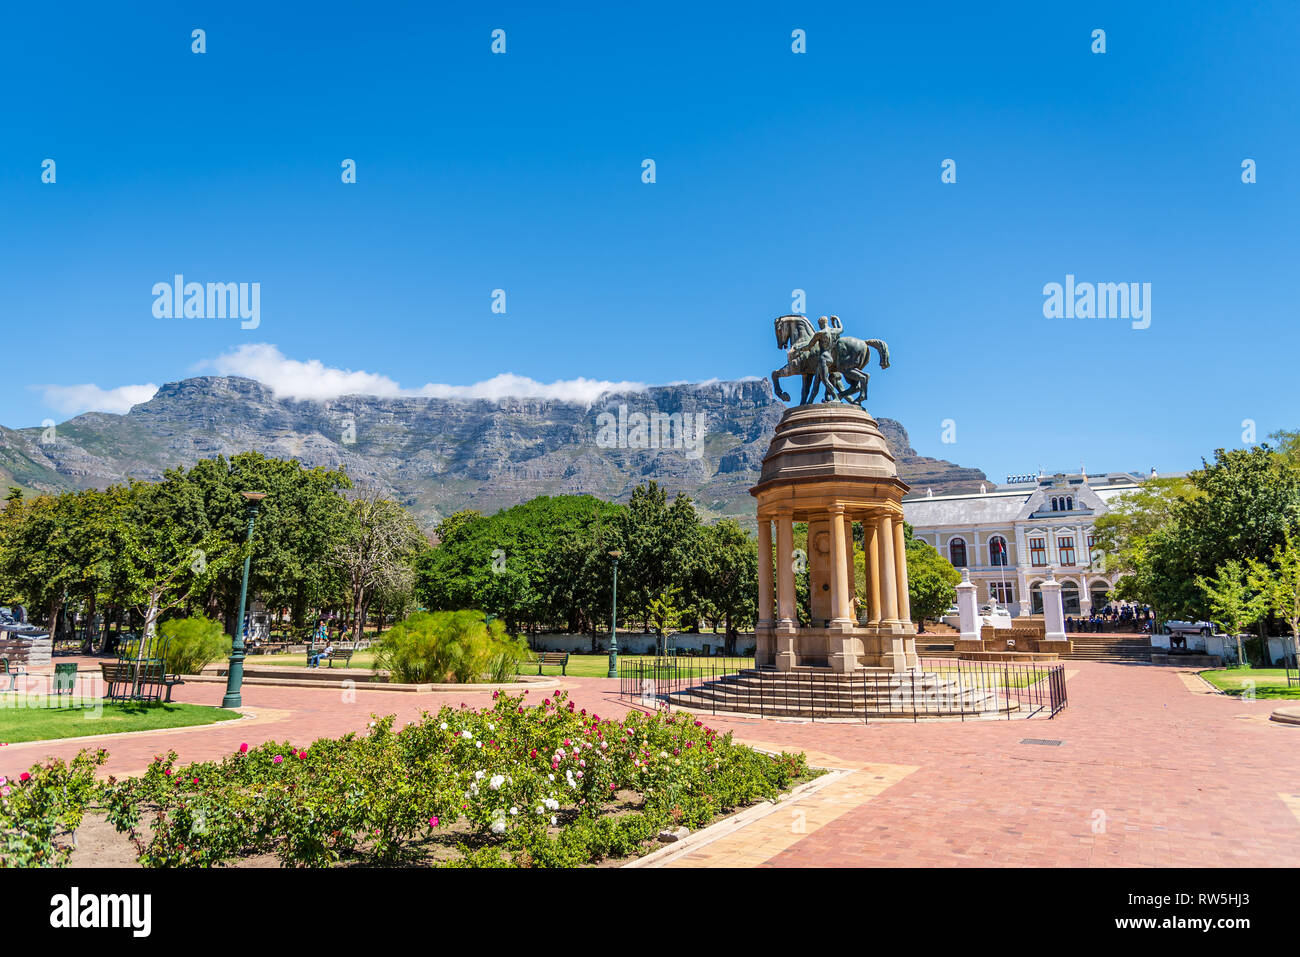 The Company's Garden, Cape Town, South Africa - Stock Image